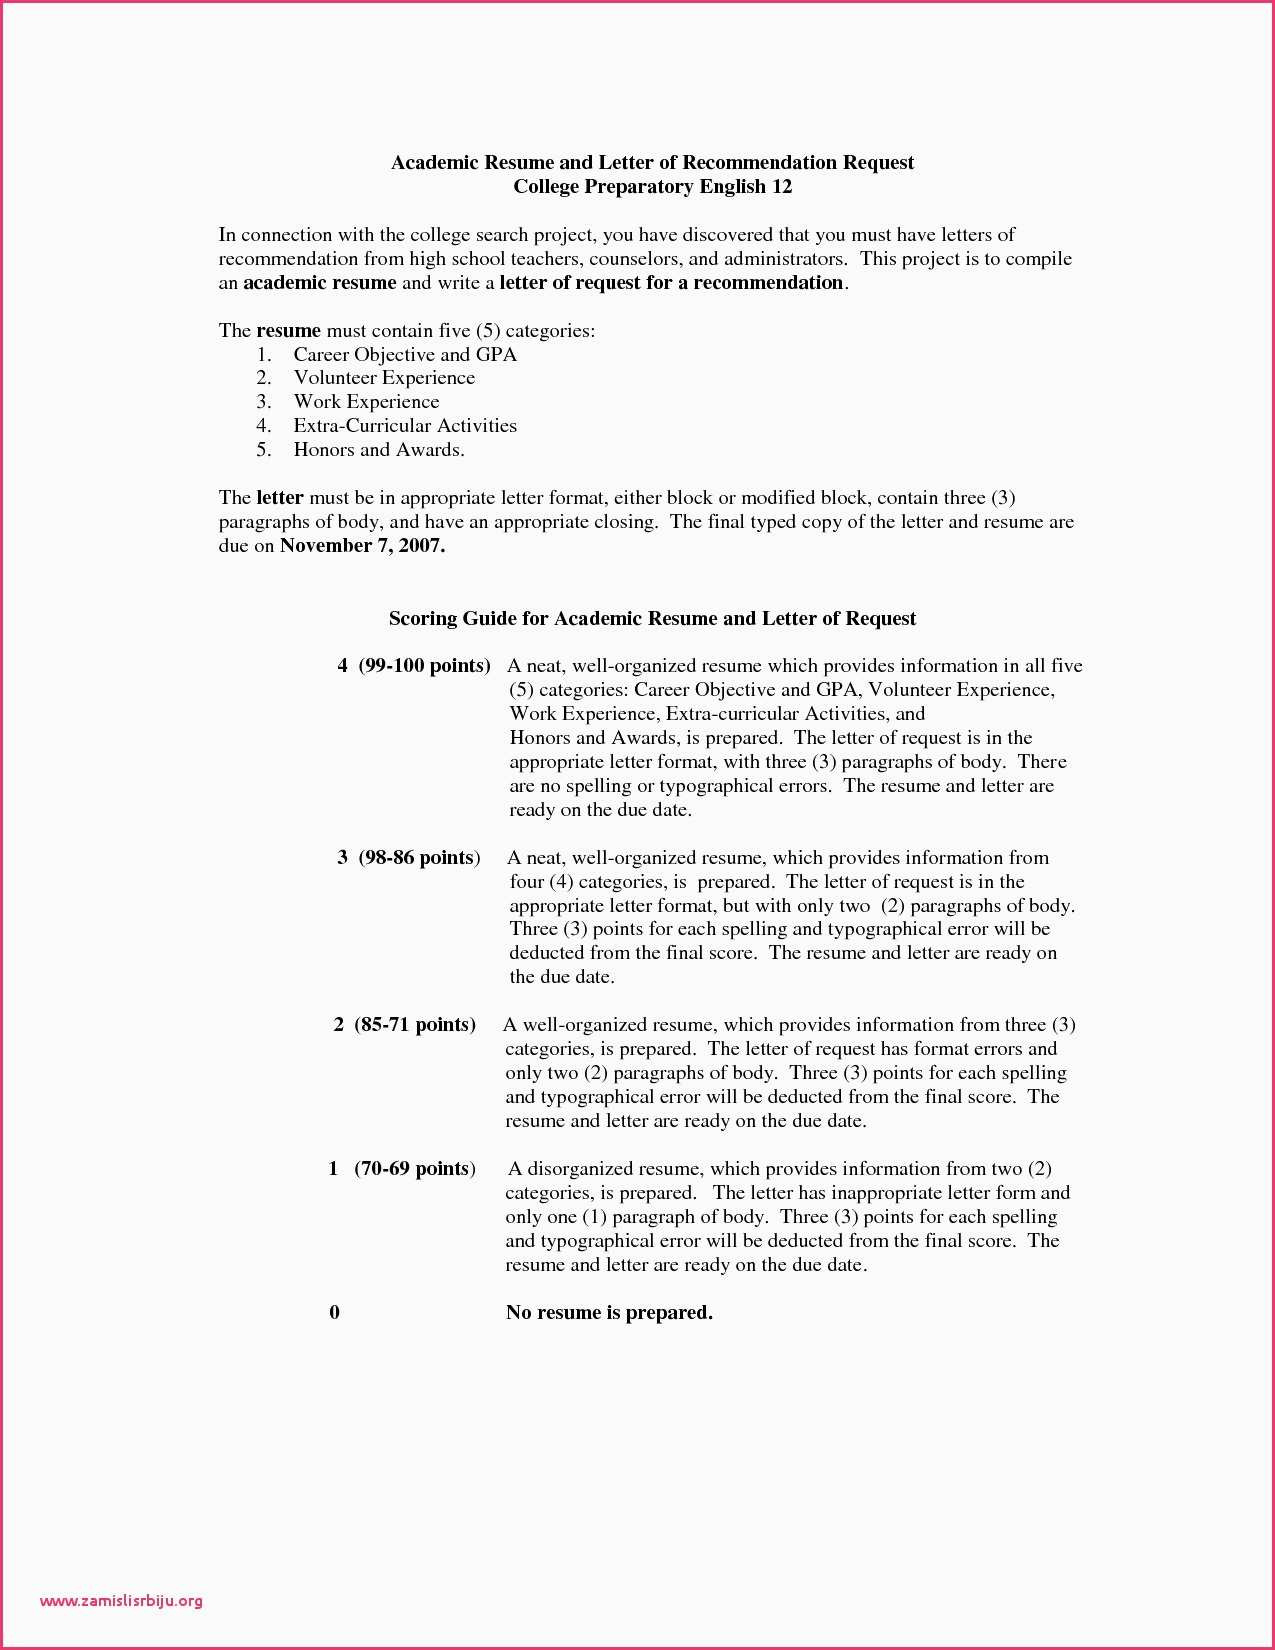 Spanish Resume Templates - Resume Templates In Spanish